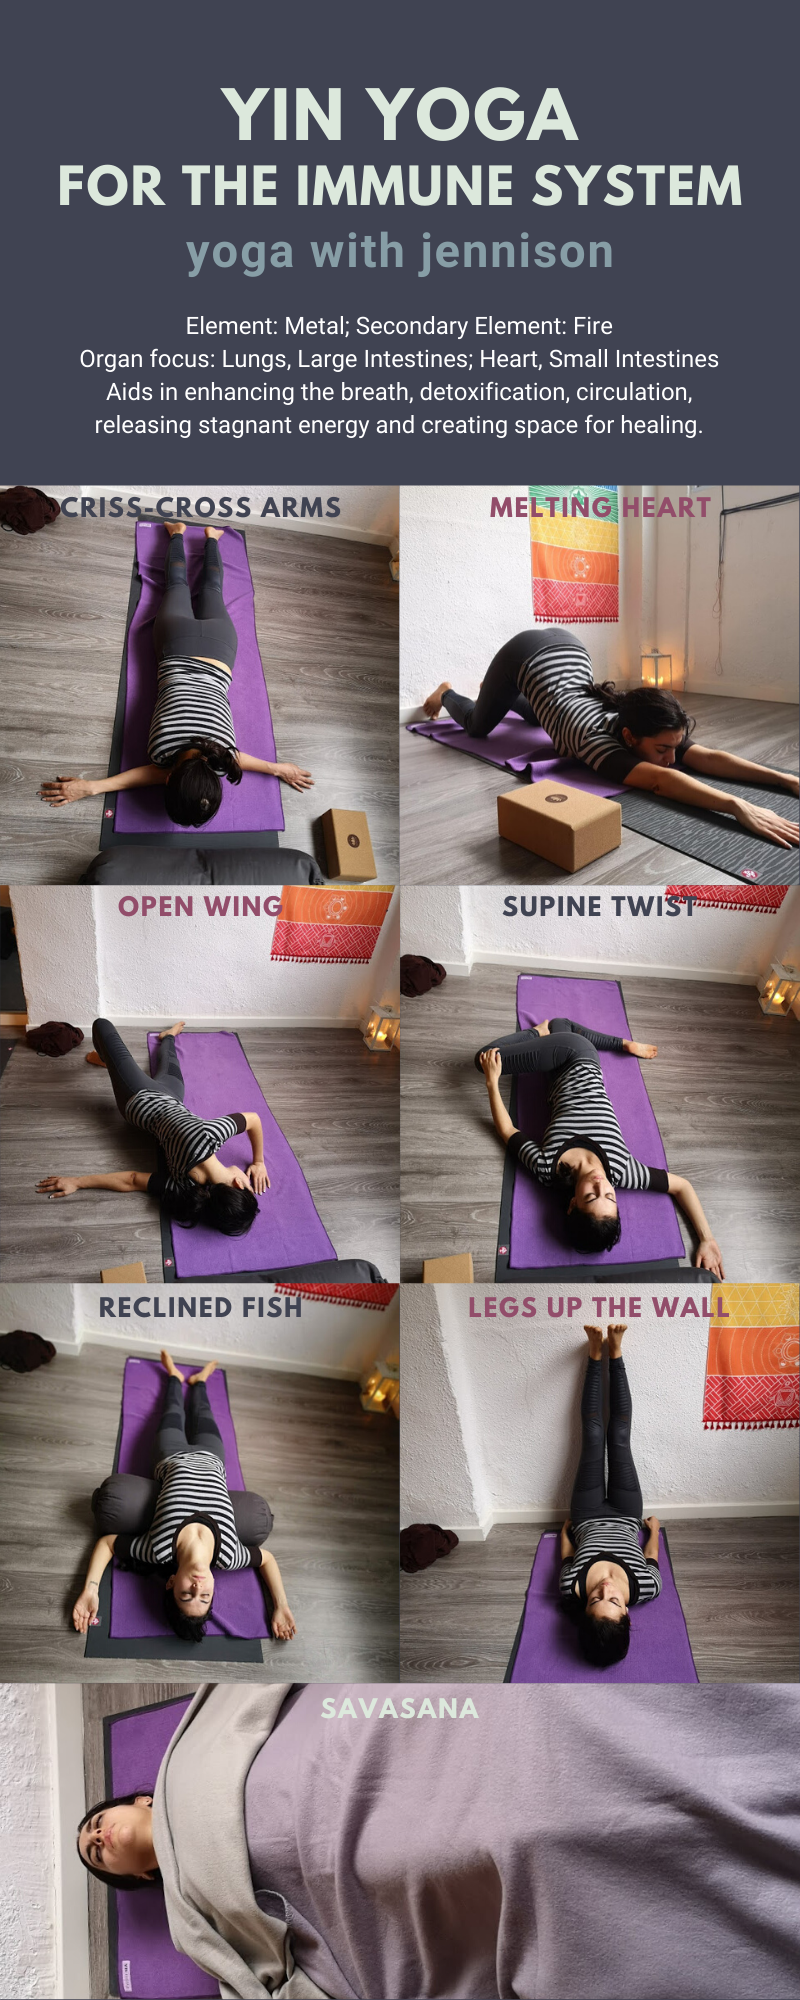 Yin Yoga For The Immune System Yoga With Jennison 60 Minute Sequence Design For Immune System Support Focus On The In 2020 Yin Yoga Yin Yoga Poses Yin Yoga Sequence